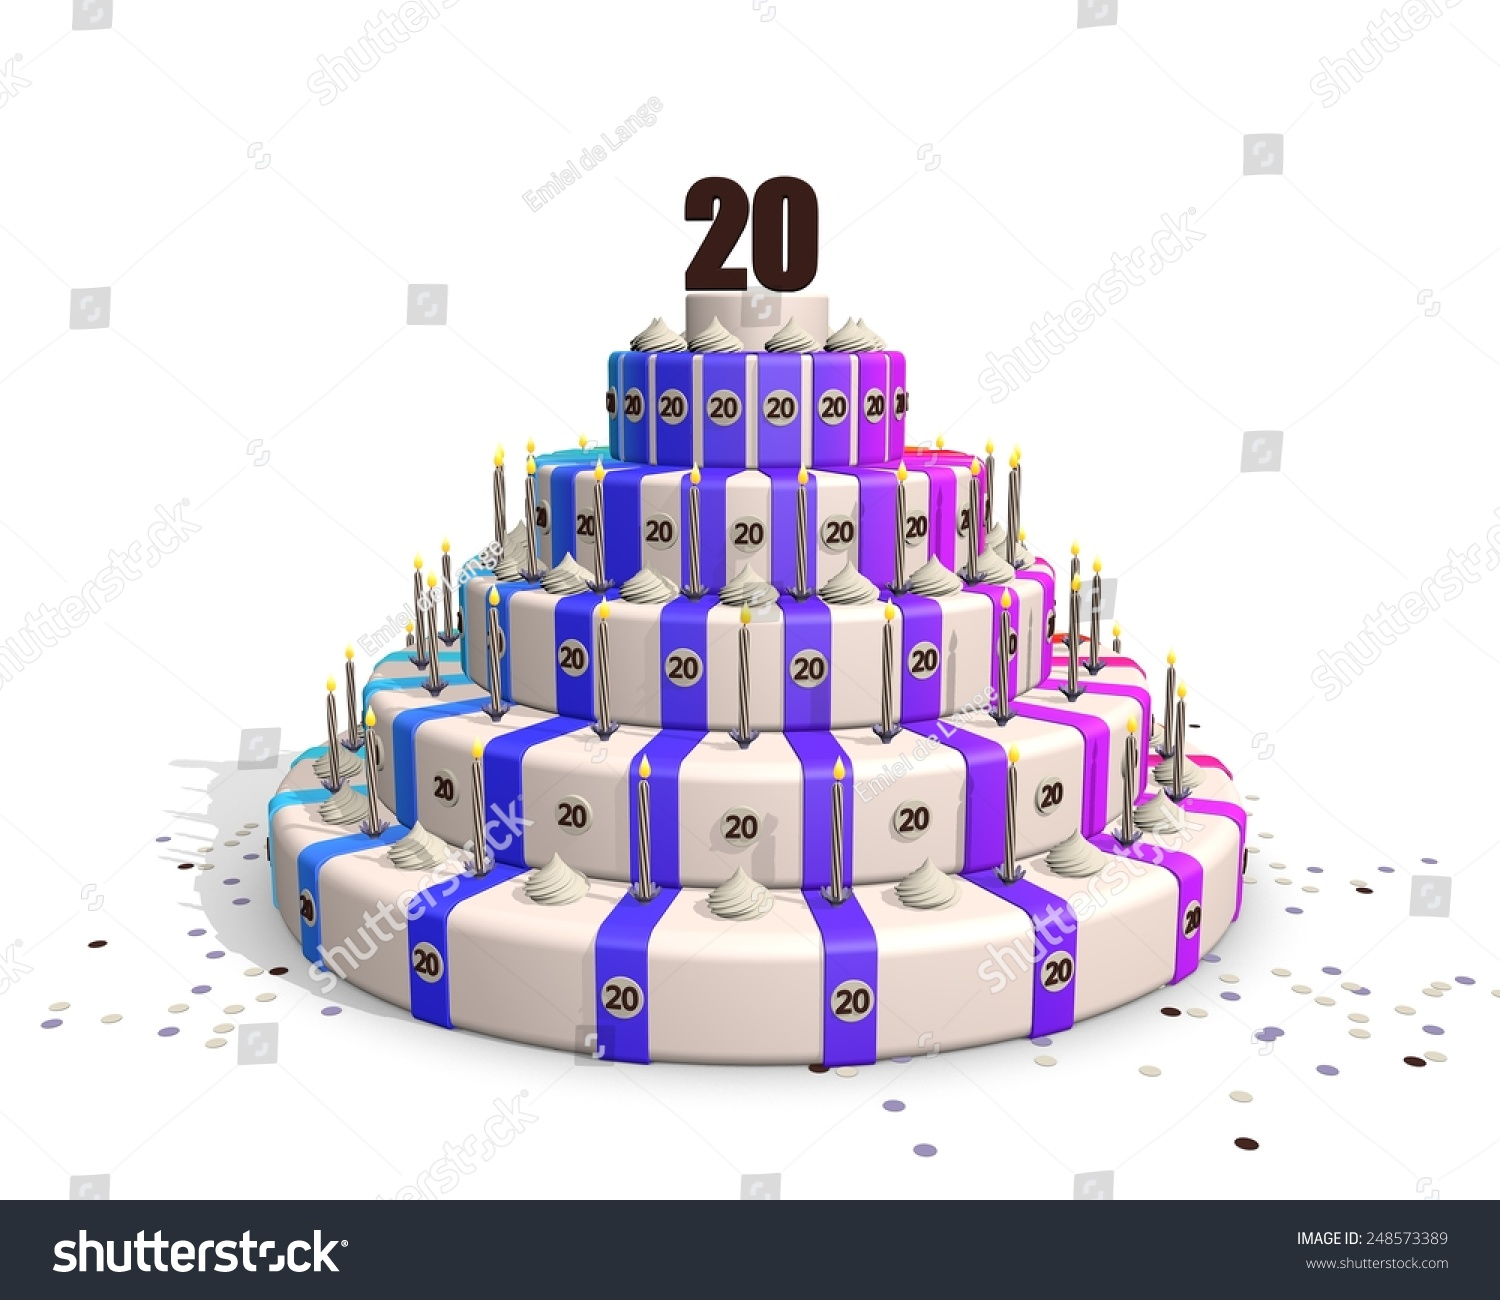 Royalty Free Big Happy Birthday Cake With Candles 248573389 Stock